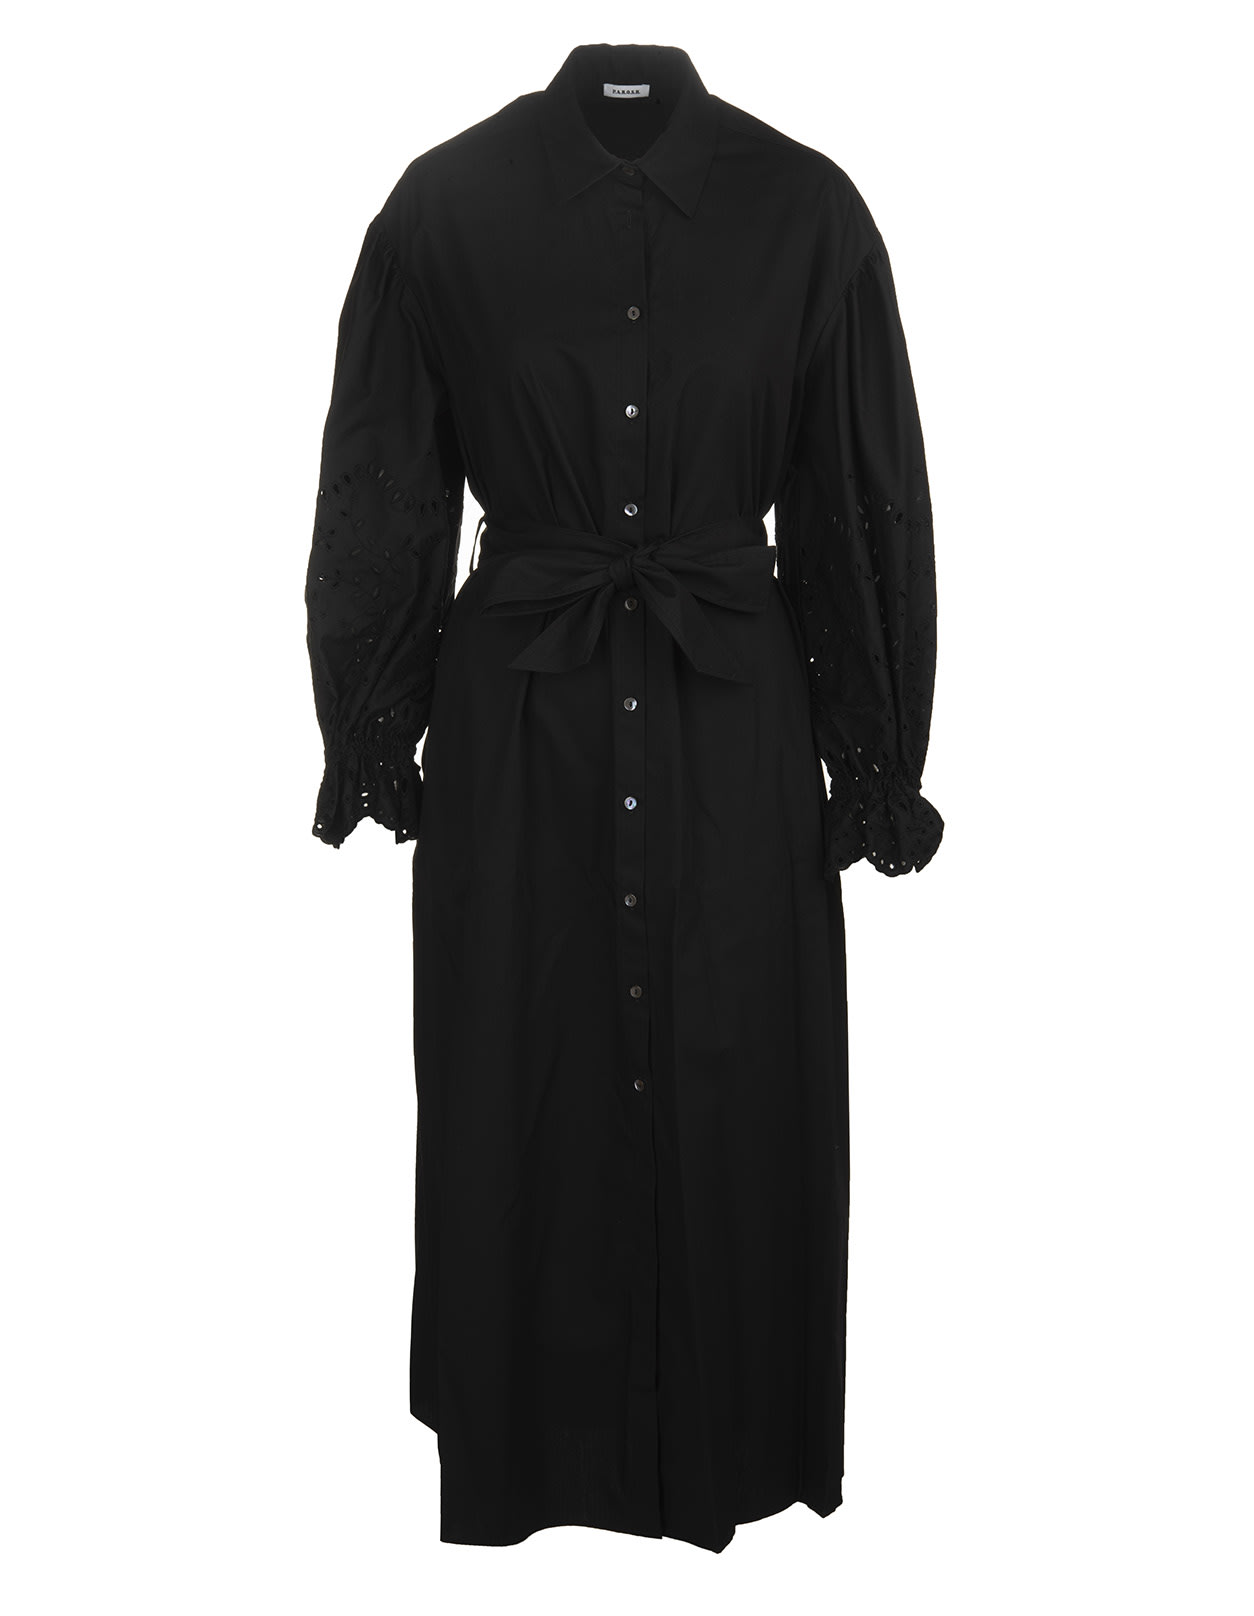 Buy Black Button-up Long-sleeved Midi Dress online, shop Parosh with free shipping